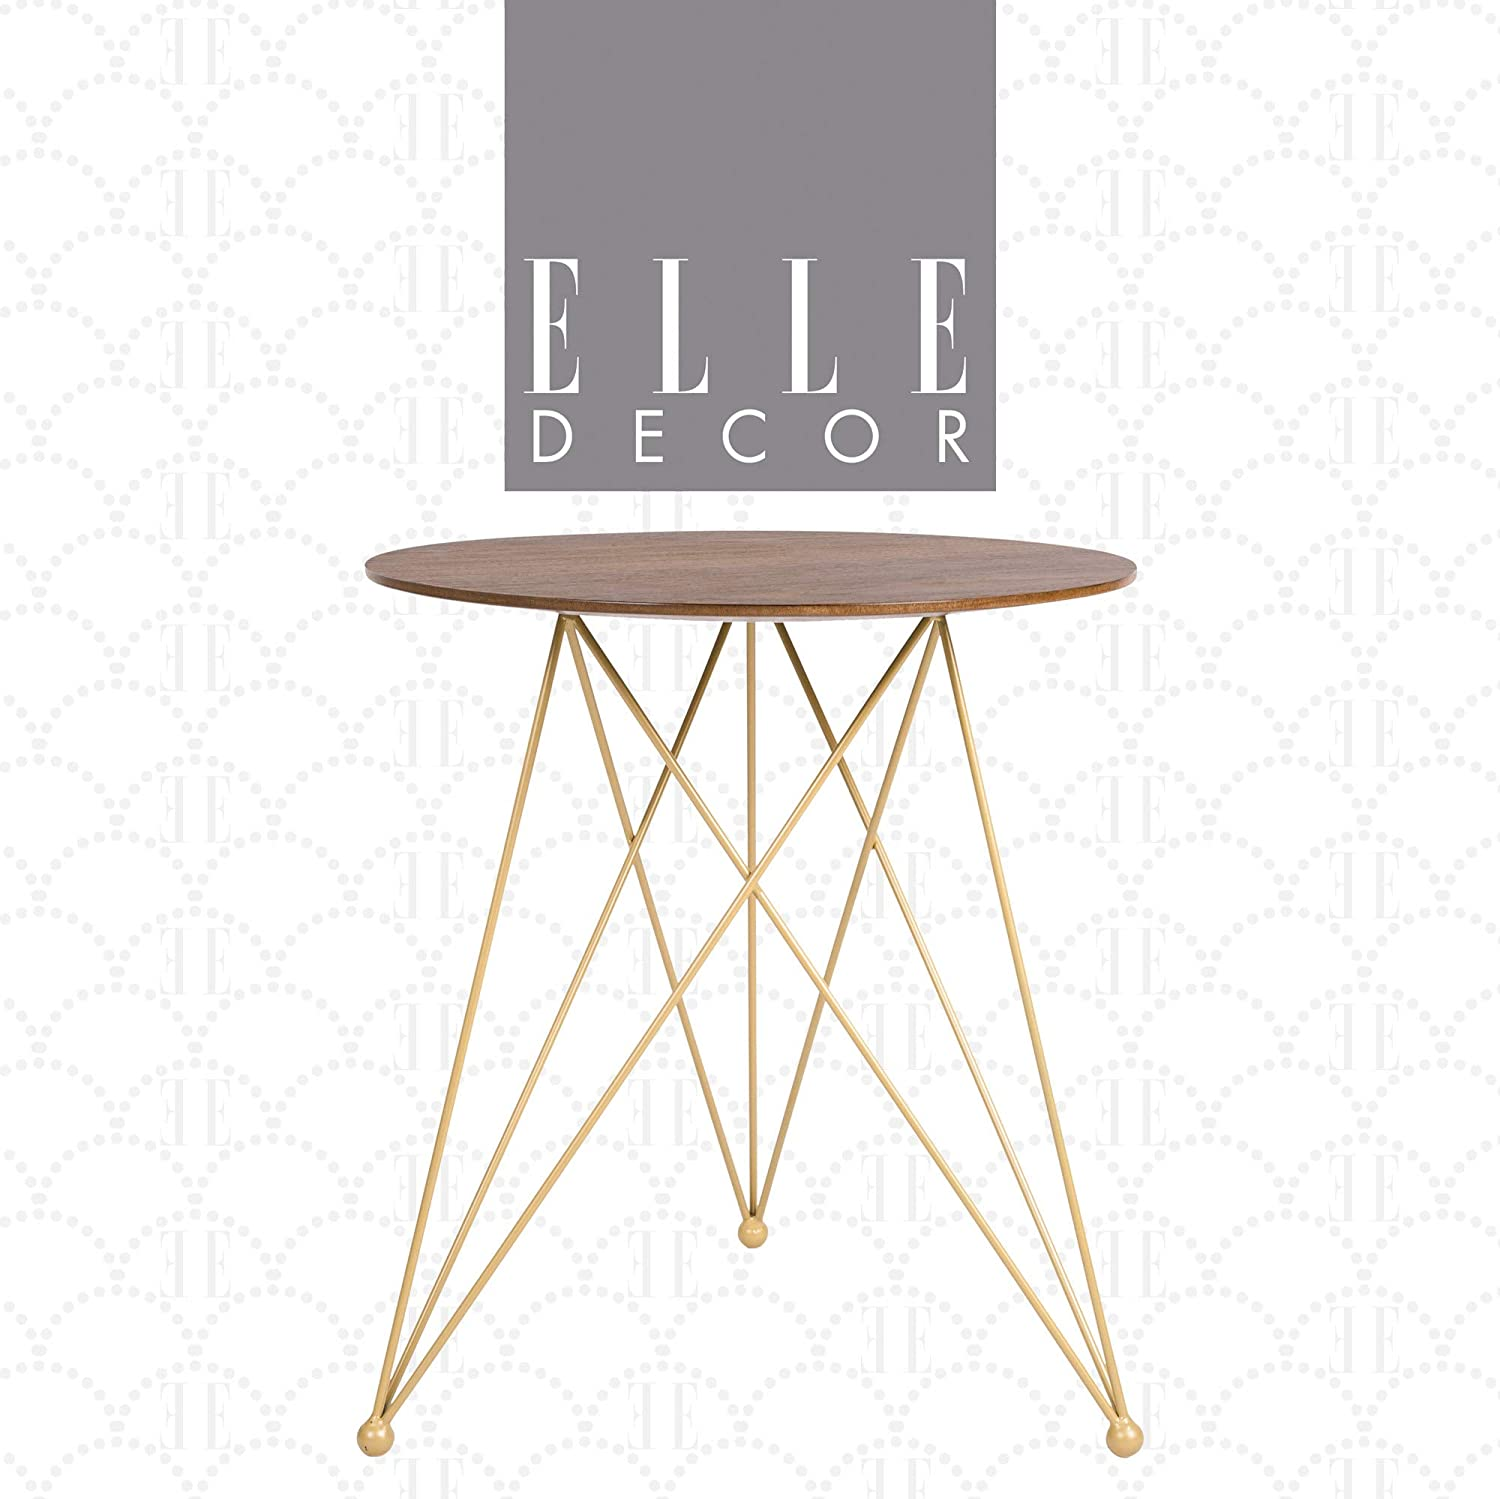 "Elle Decor Livvy Round Wood and Metal Side Table with Tripod Legs, Small Modern Living Room Accent Nightstand, 20"" Tabletop Height, Walnut Brown and Gold"